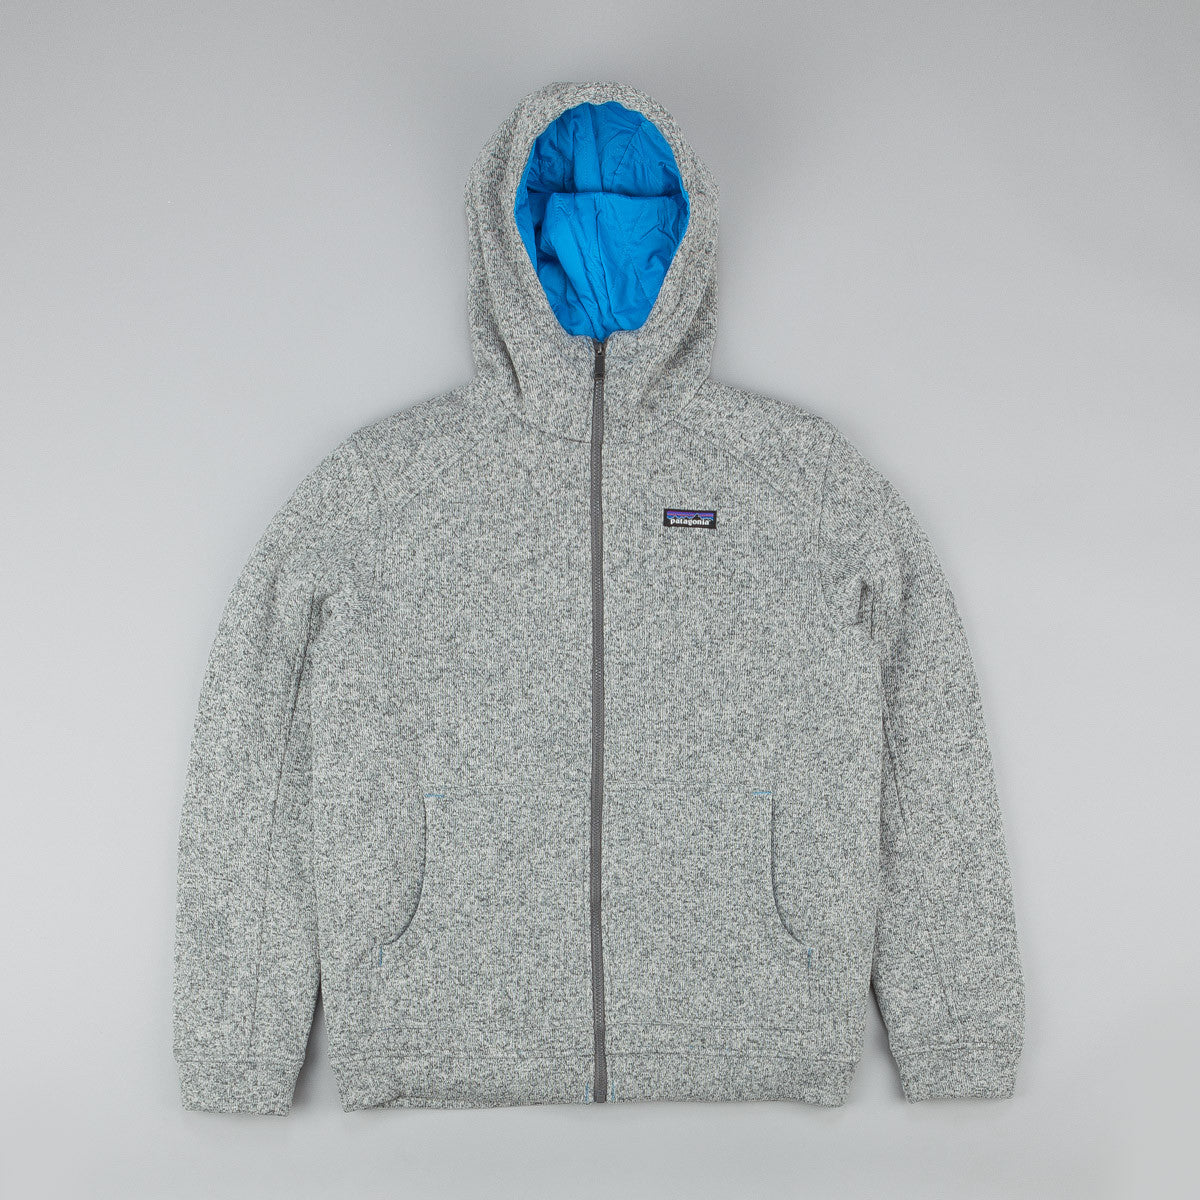 Patagonia Insulated Better Sweater Hooded Fleece